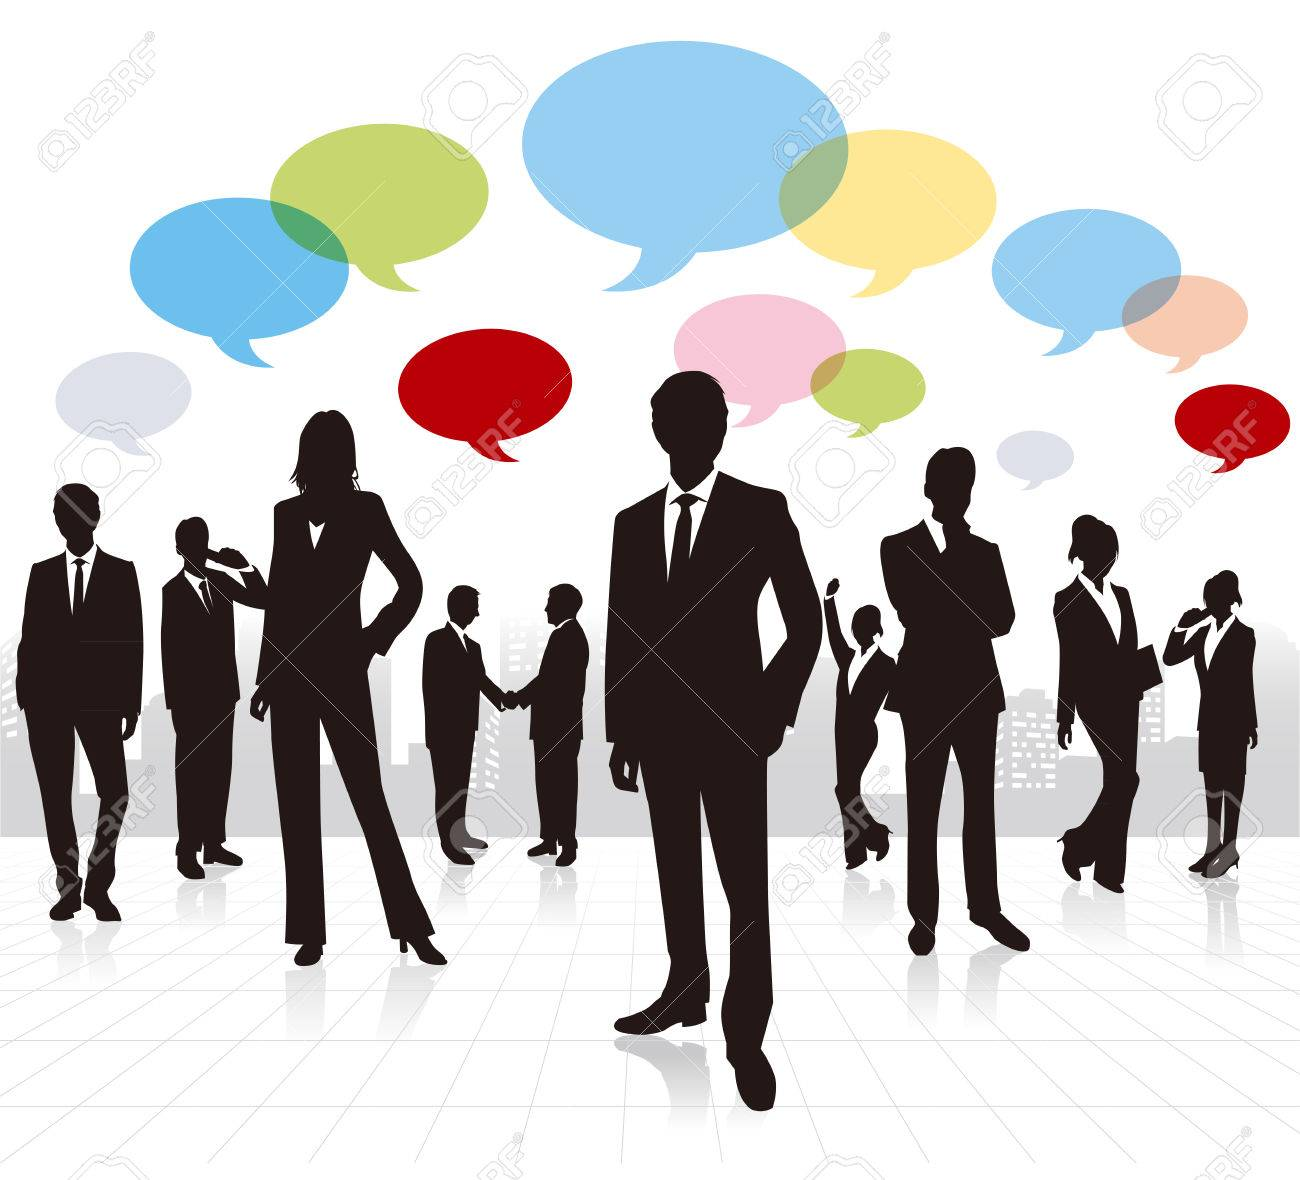 business people Vector - 30825820